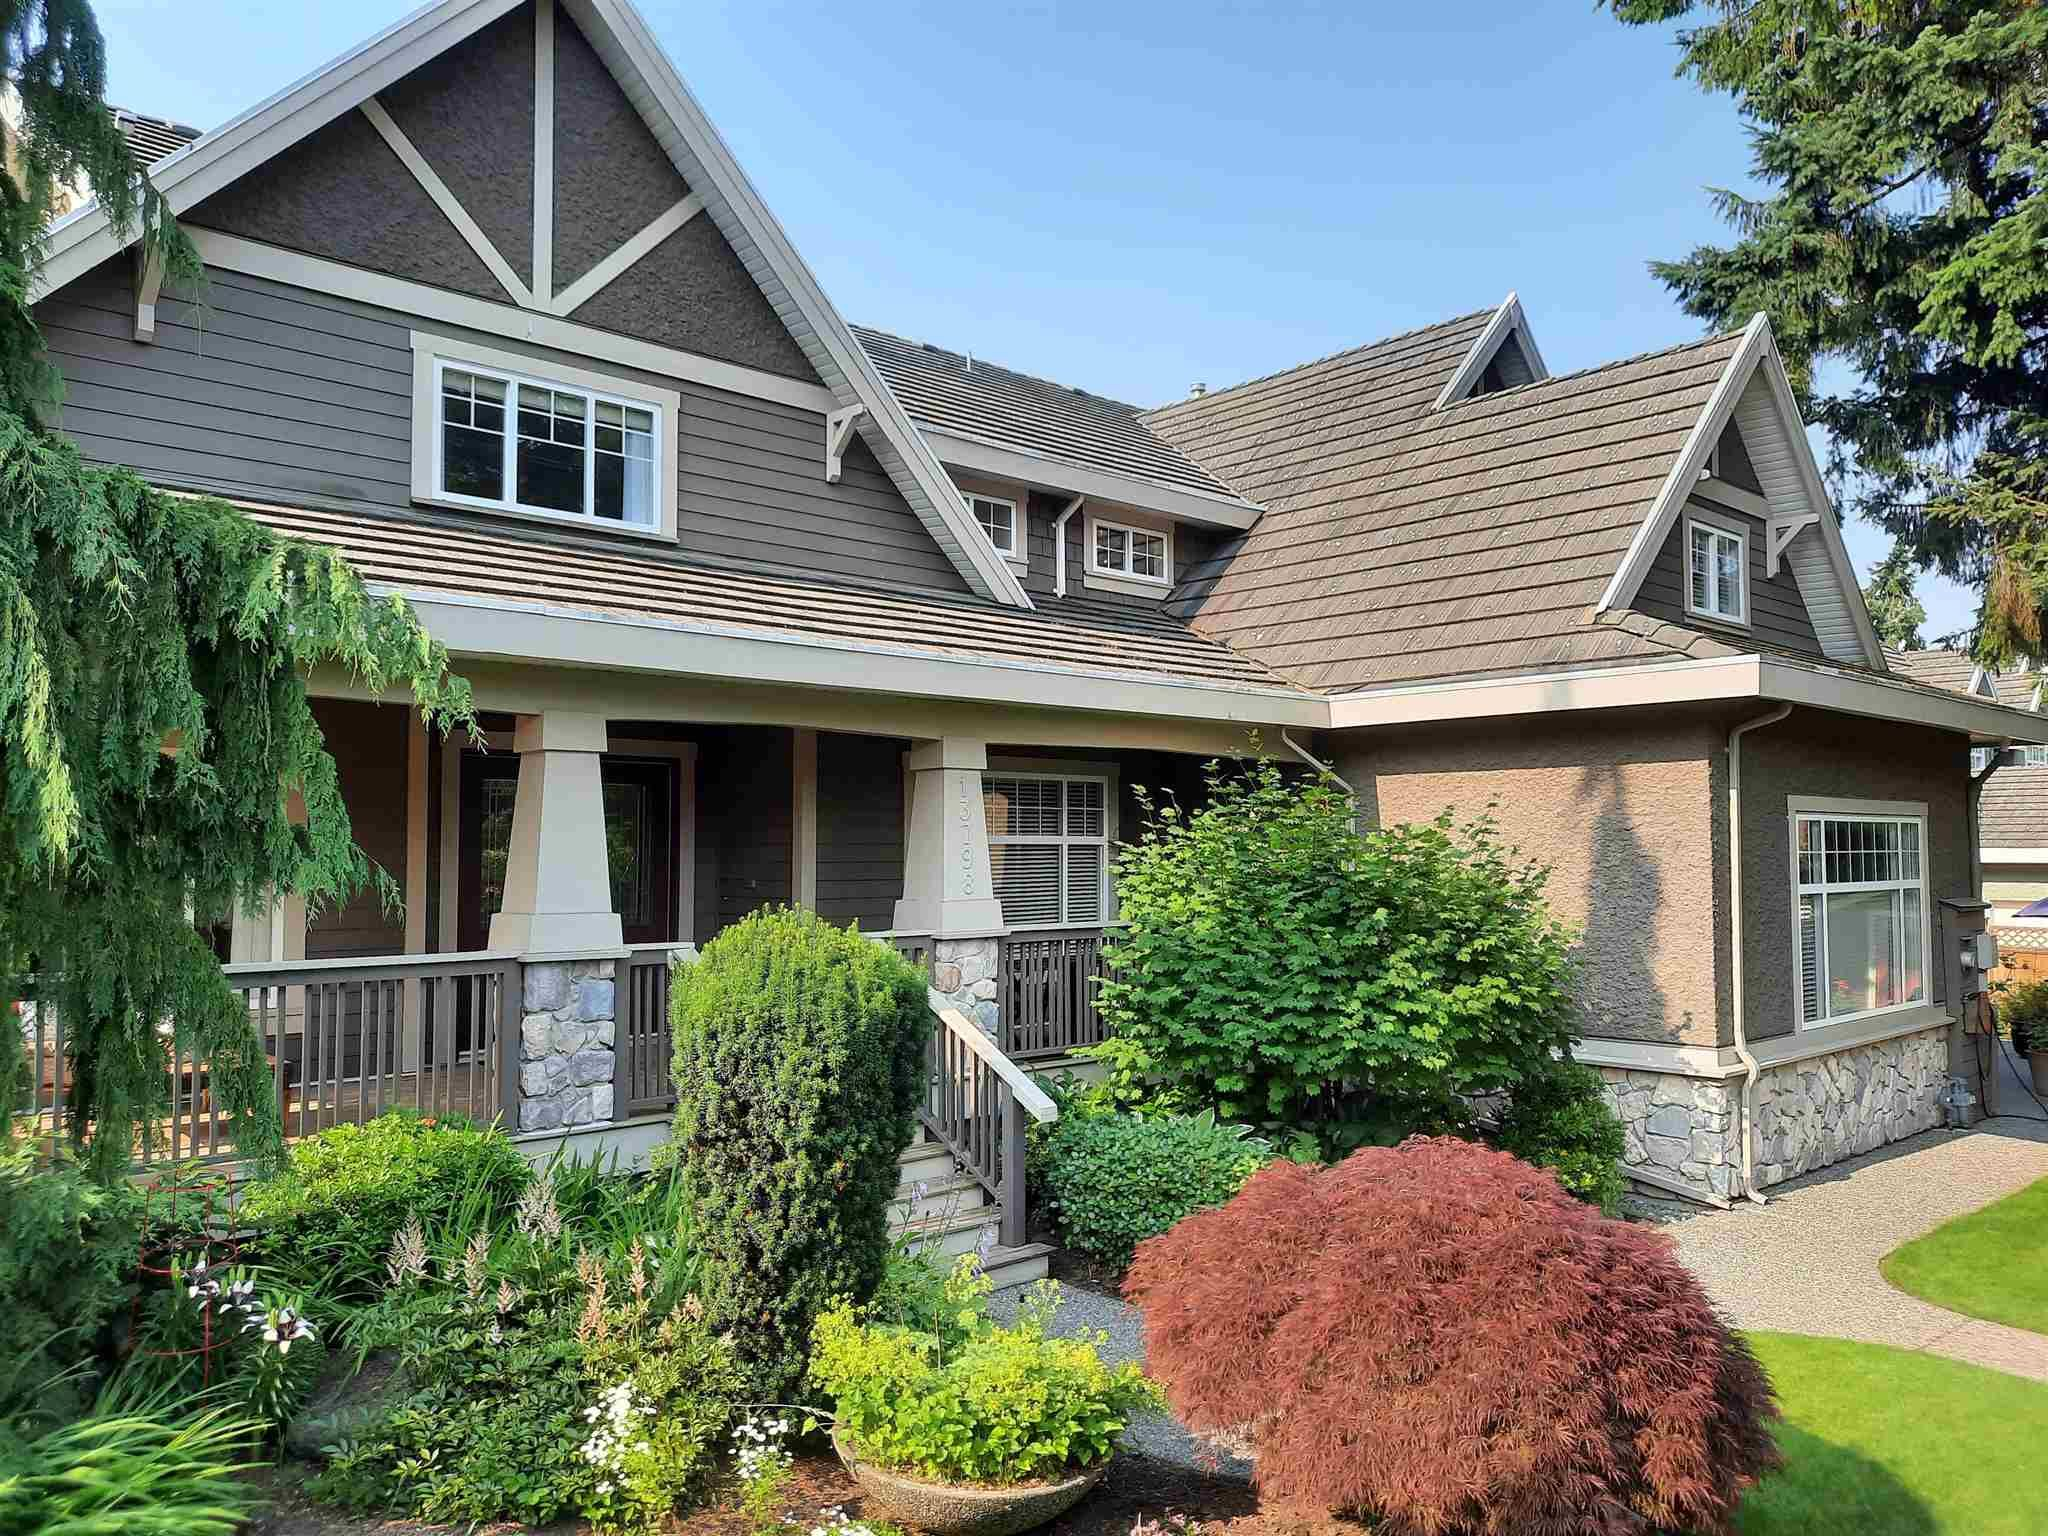 """Main Photo: 13798 24 Avenue in Surrey: Elgin Chantrell House for sale in """"CHANTRELL PARK"""" (South Surrey White Rock)  : MLS®# R2596791"""